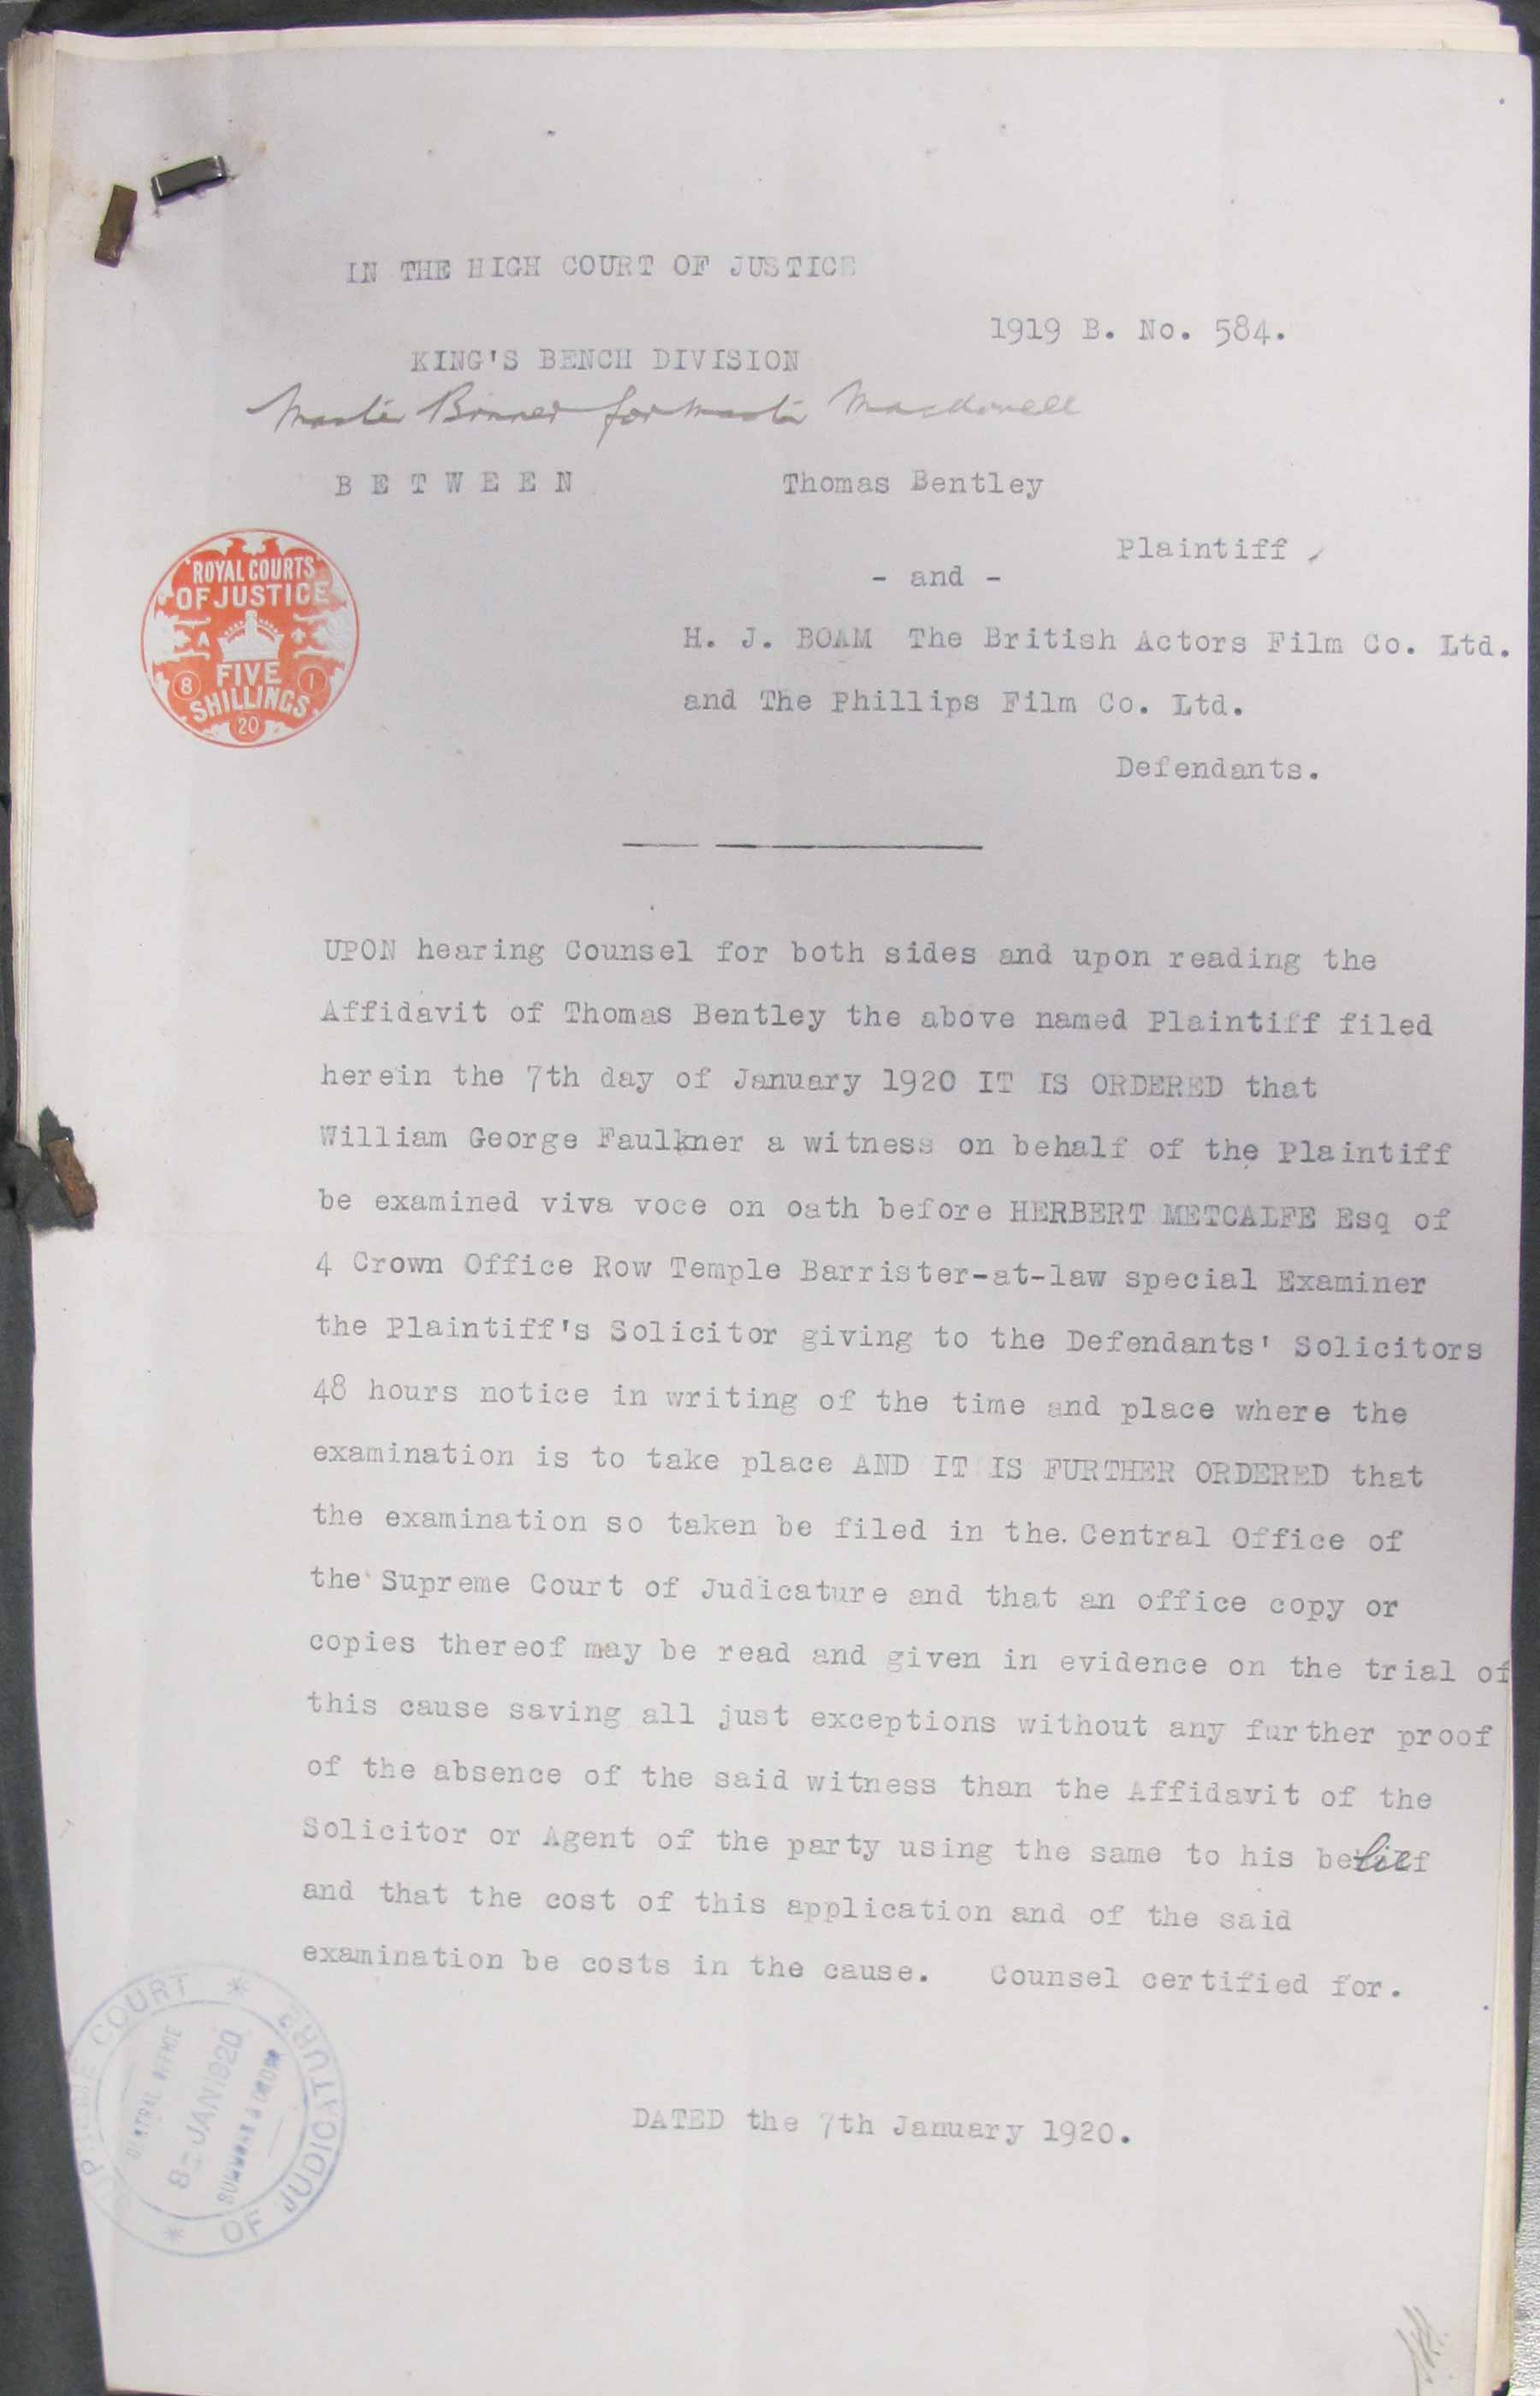 Image of a typed report of the examination of witnesses in the Thomas Bentley case